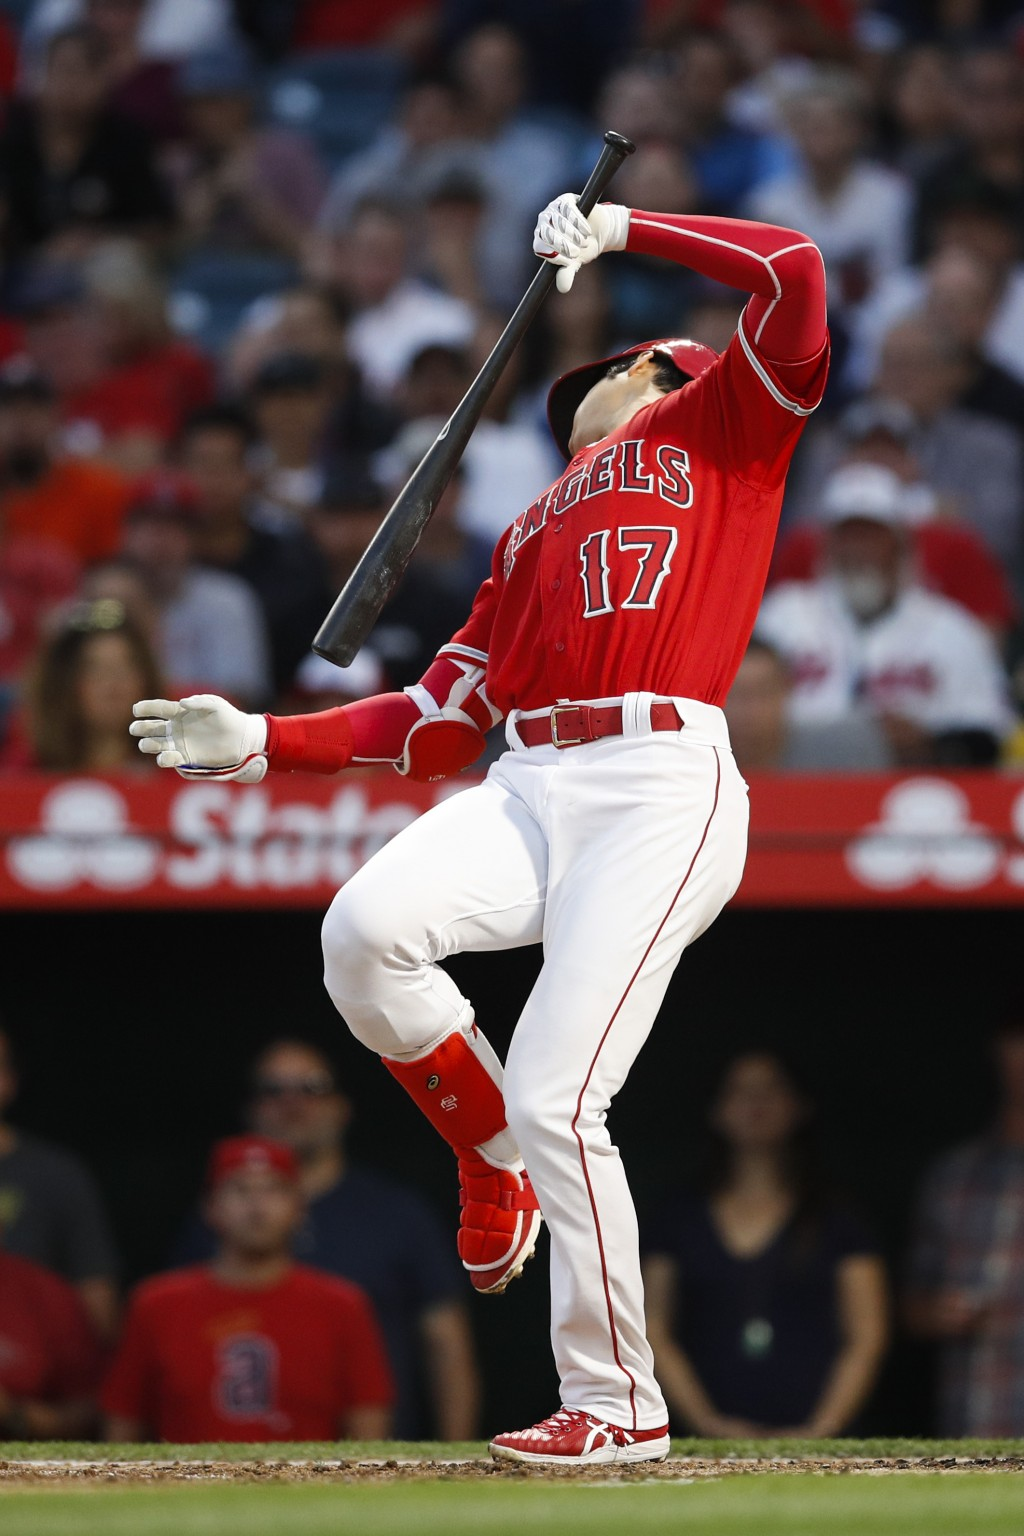 Los Angeles Angels' Shohei Ohtani, of Japan, loses balance after swinging at a pitch during the fourth inning of the team's baseball game against the ...